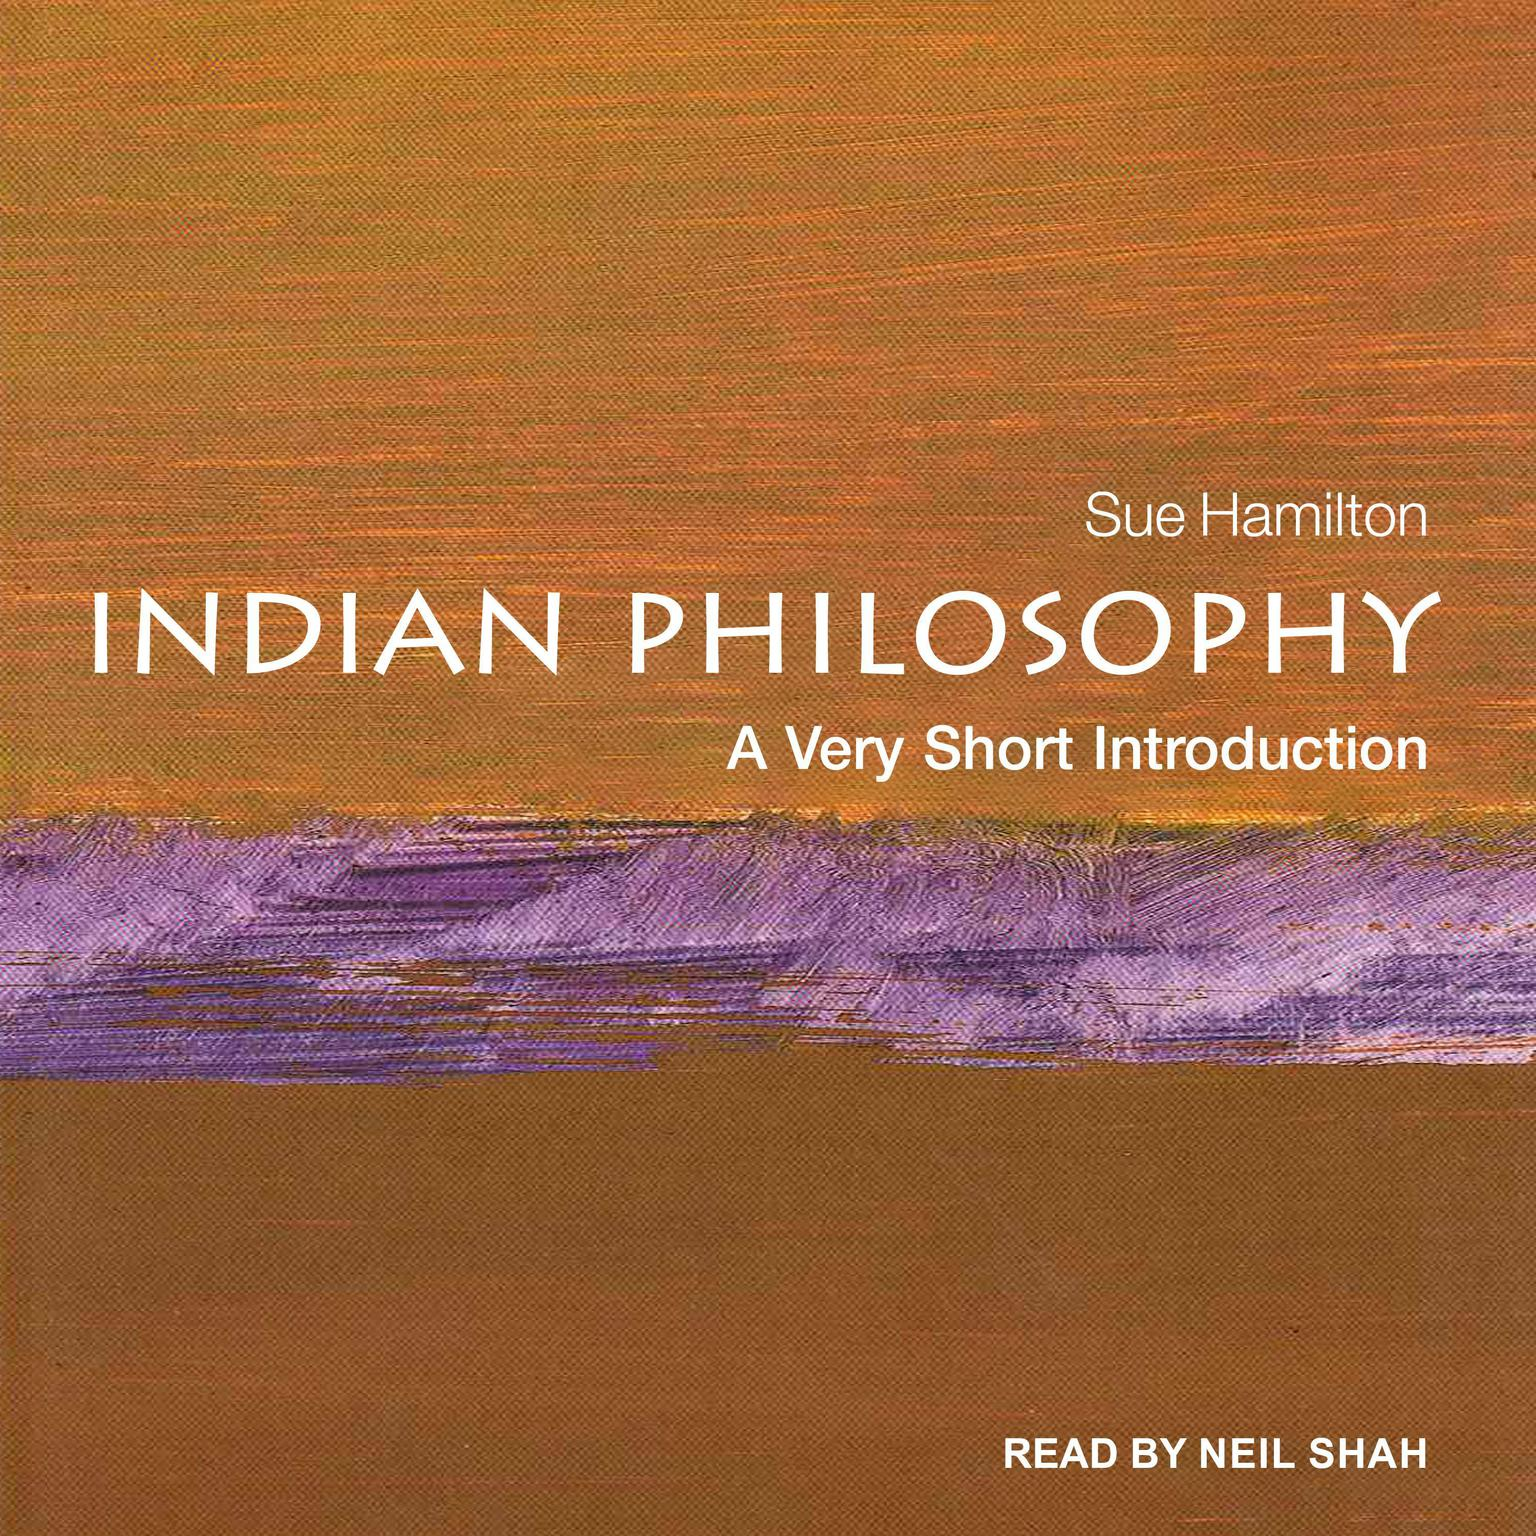 Indian Philosophy: A Very Short Introduction Audiobook, by Sue Hamilton